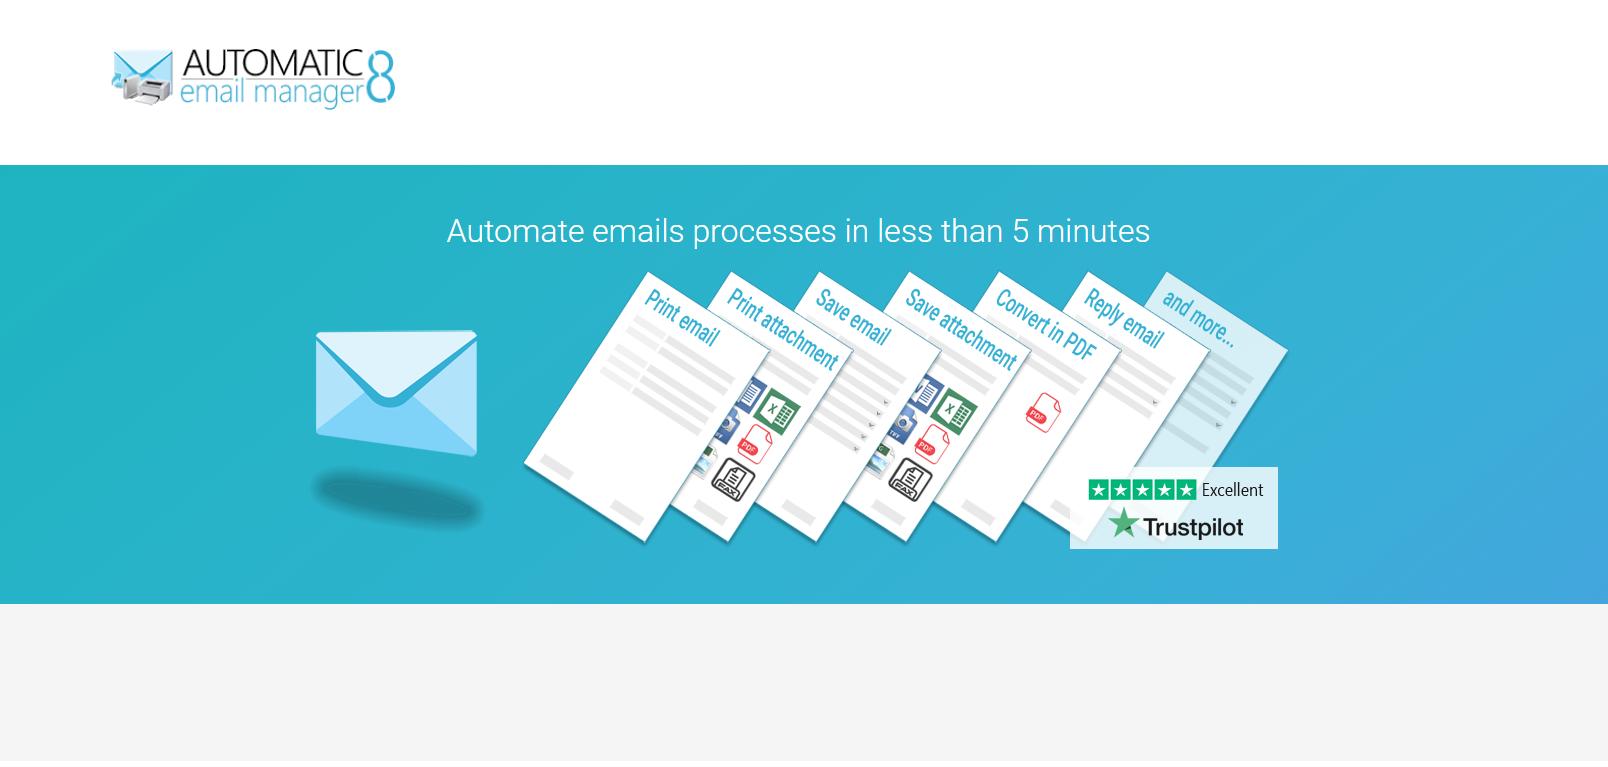 automaic emal manager - Automatic Email Manager